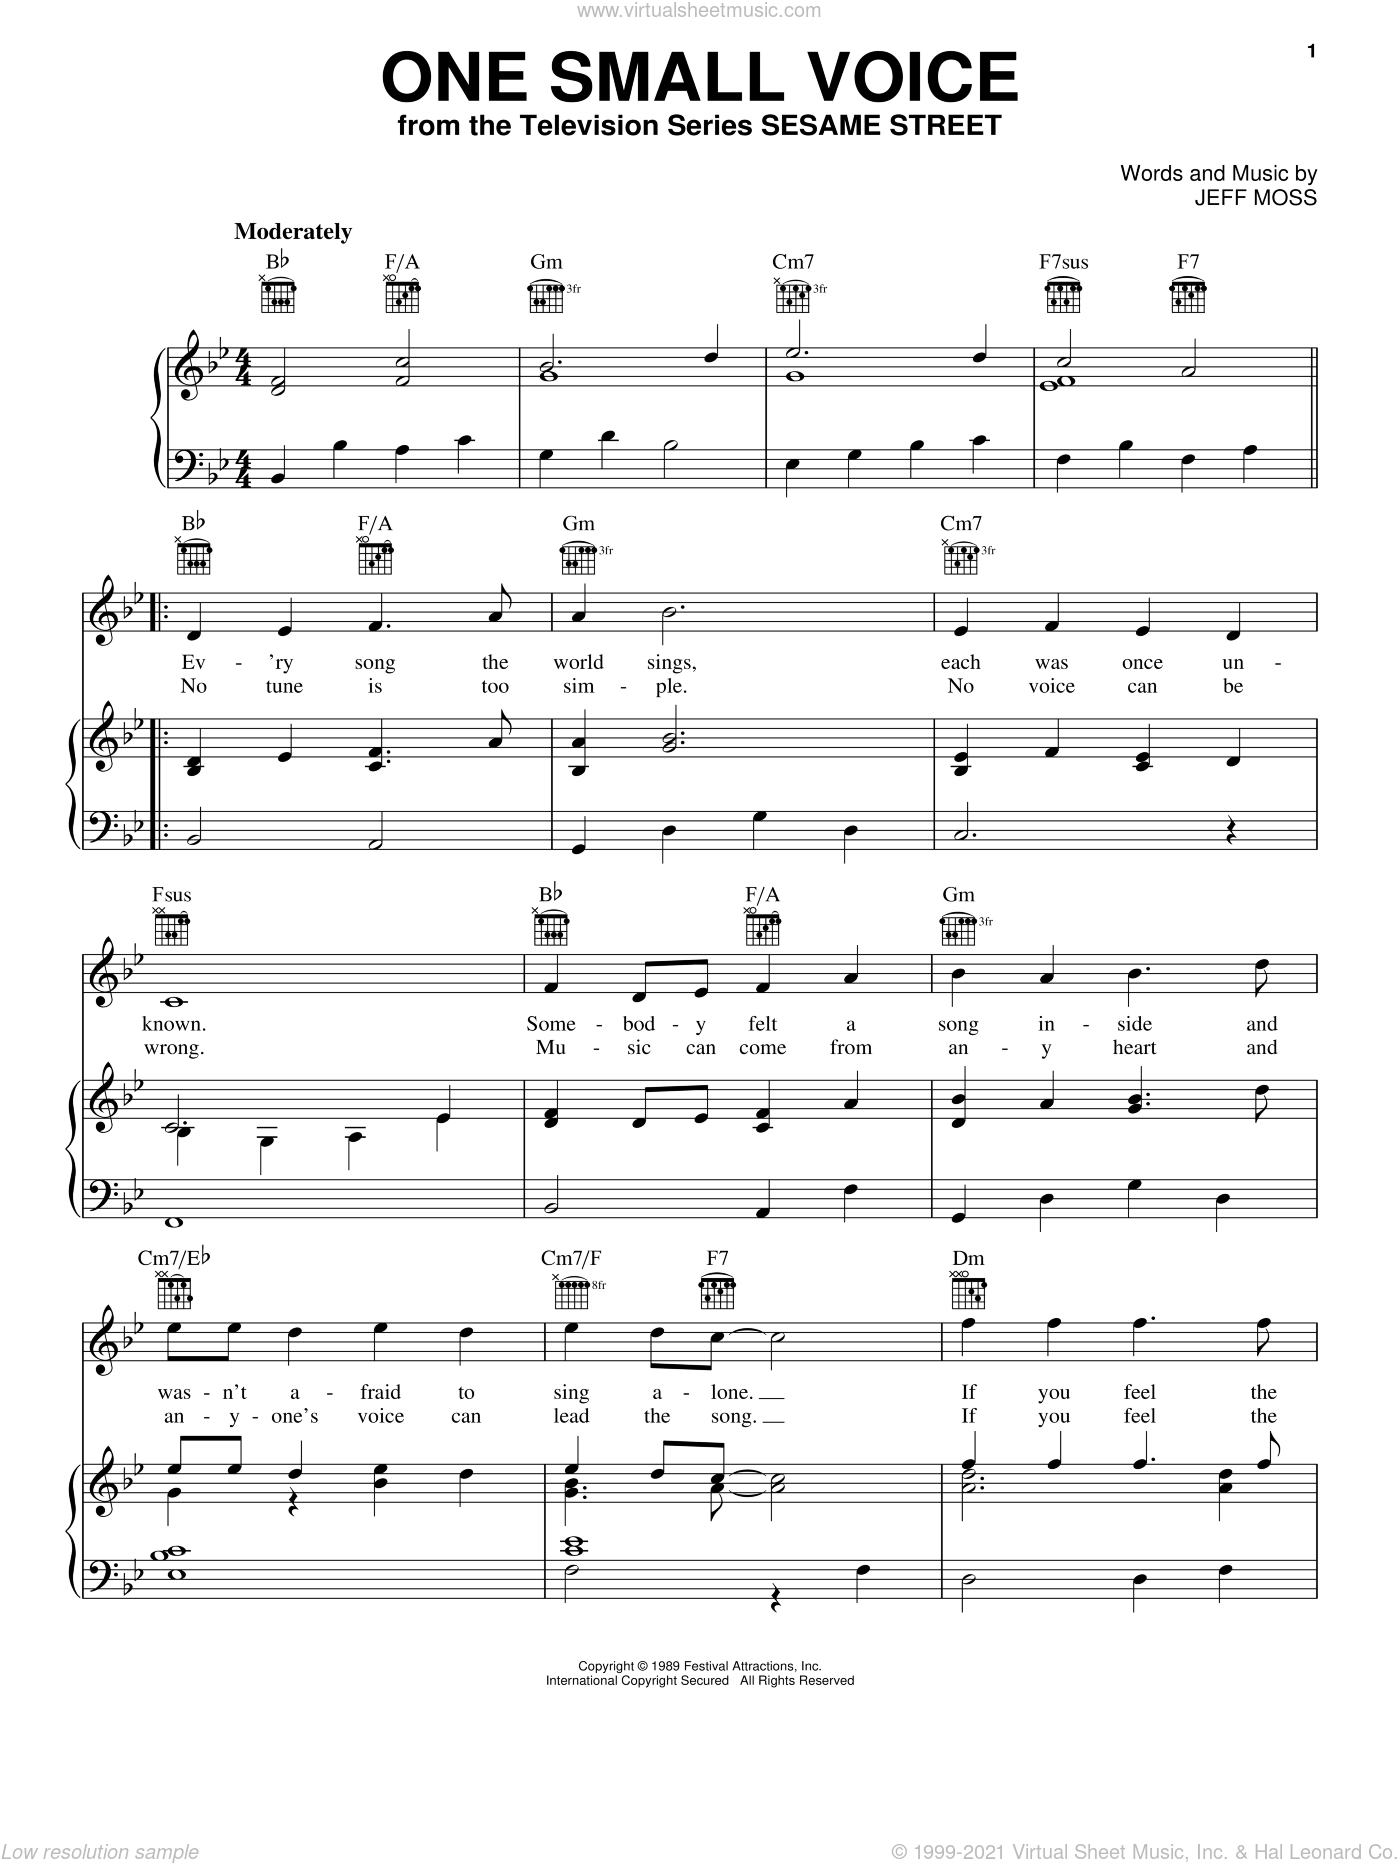 One Small Voice sheet music for voice, piano or guitar by Jeff Moss, intermediate skill level